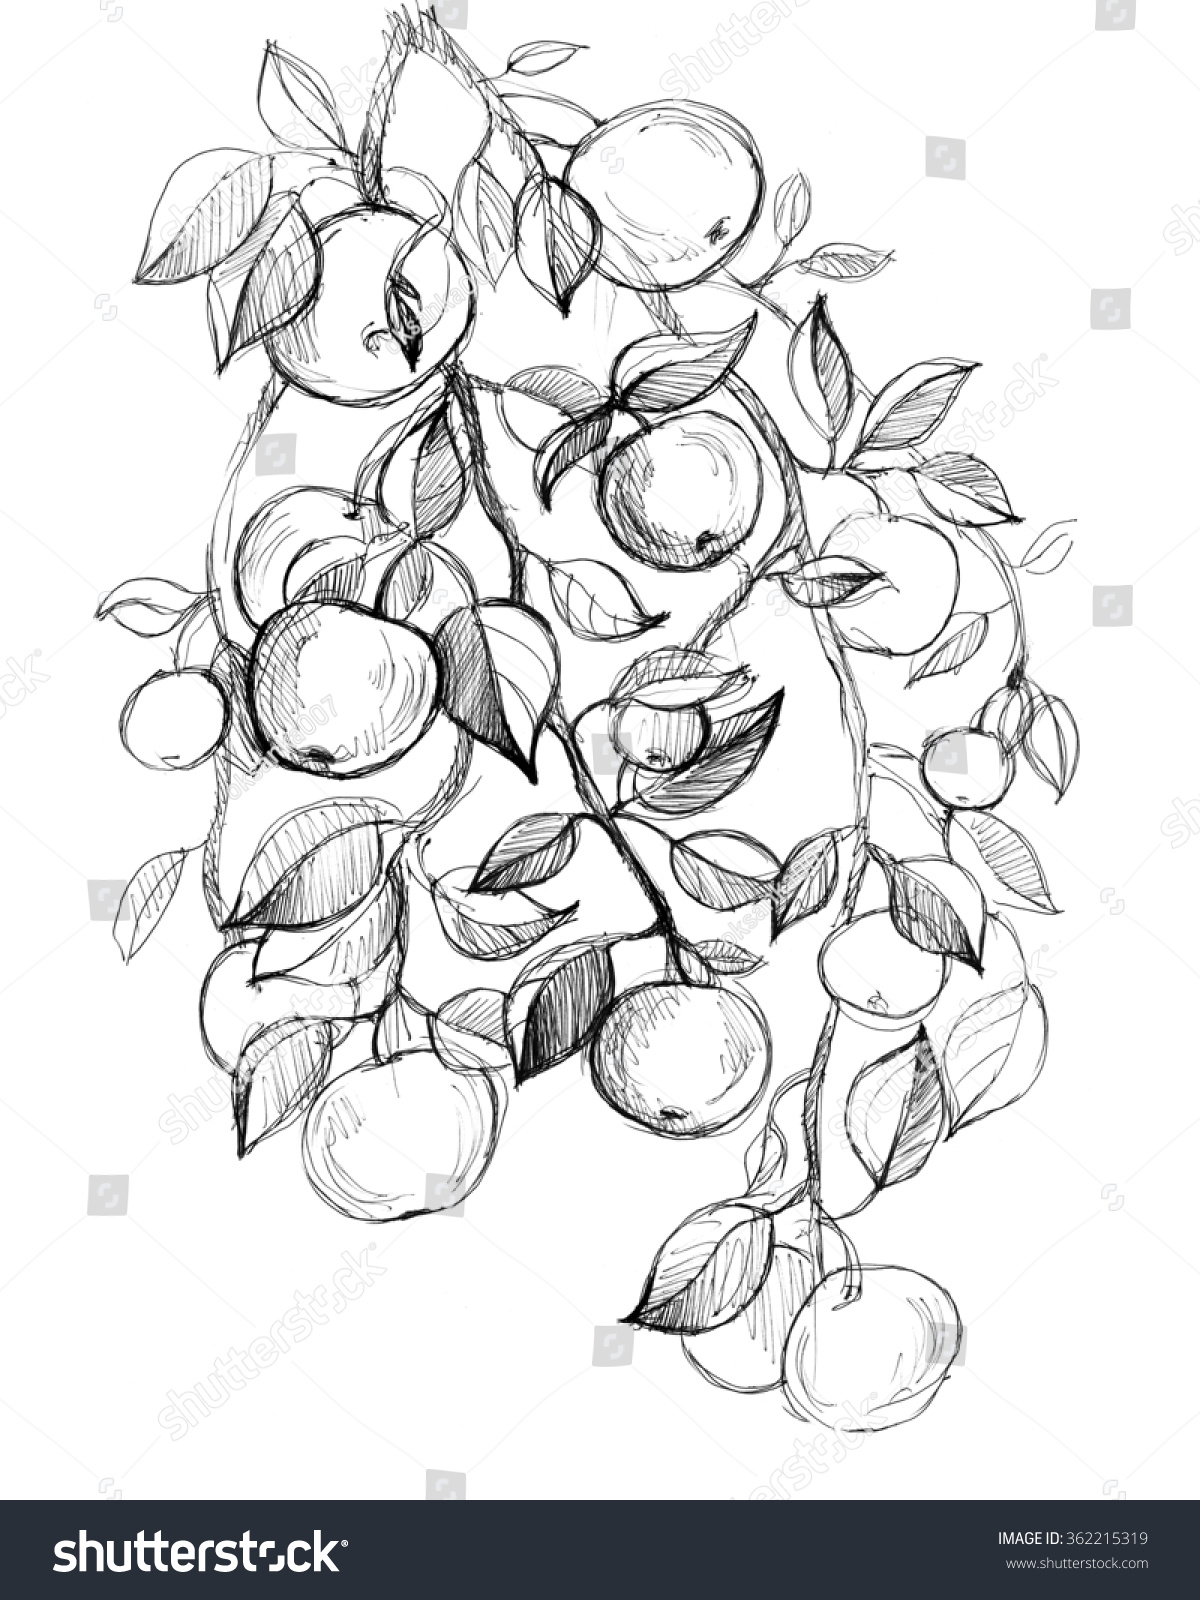 Coloring book page apple tree - Apple Tree Fruits Leaves Hand Drawn Amazing Artwork Love Bohemia Concept For Textile